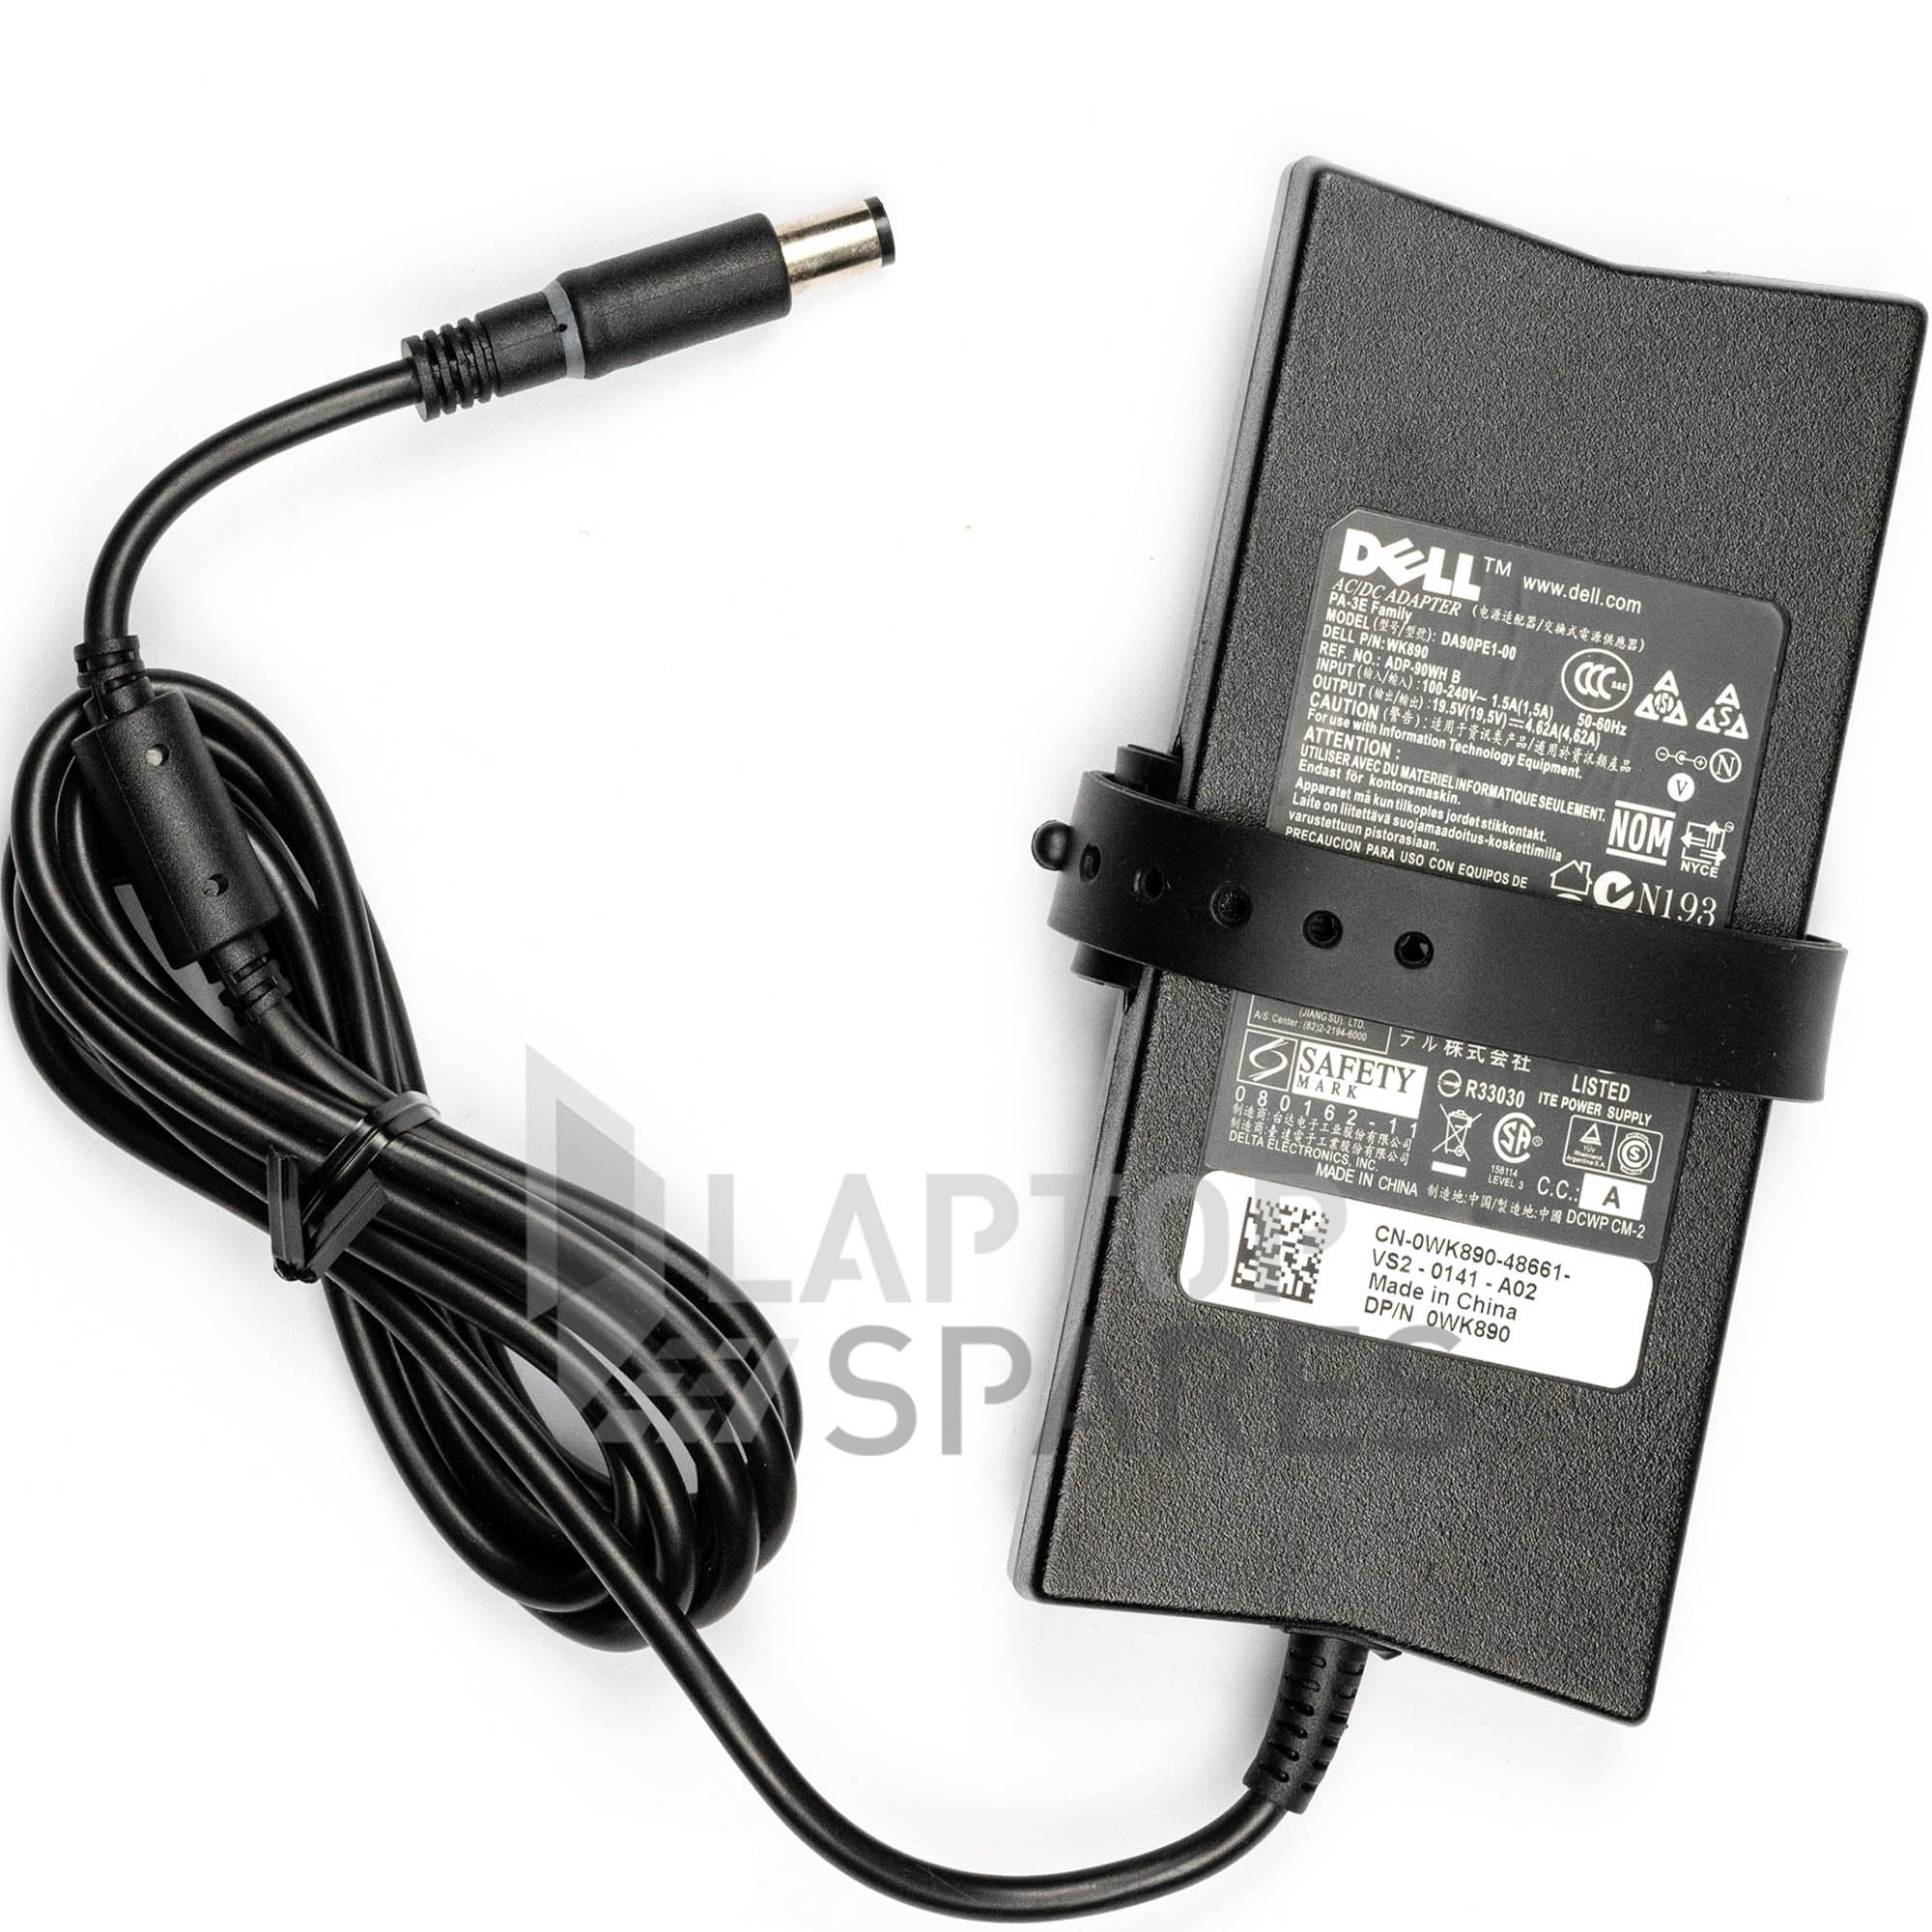 Dell Studio 1440n 1450 1457 1458 Laptop Slim AC Adapter Charger